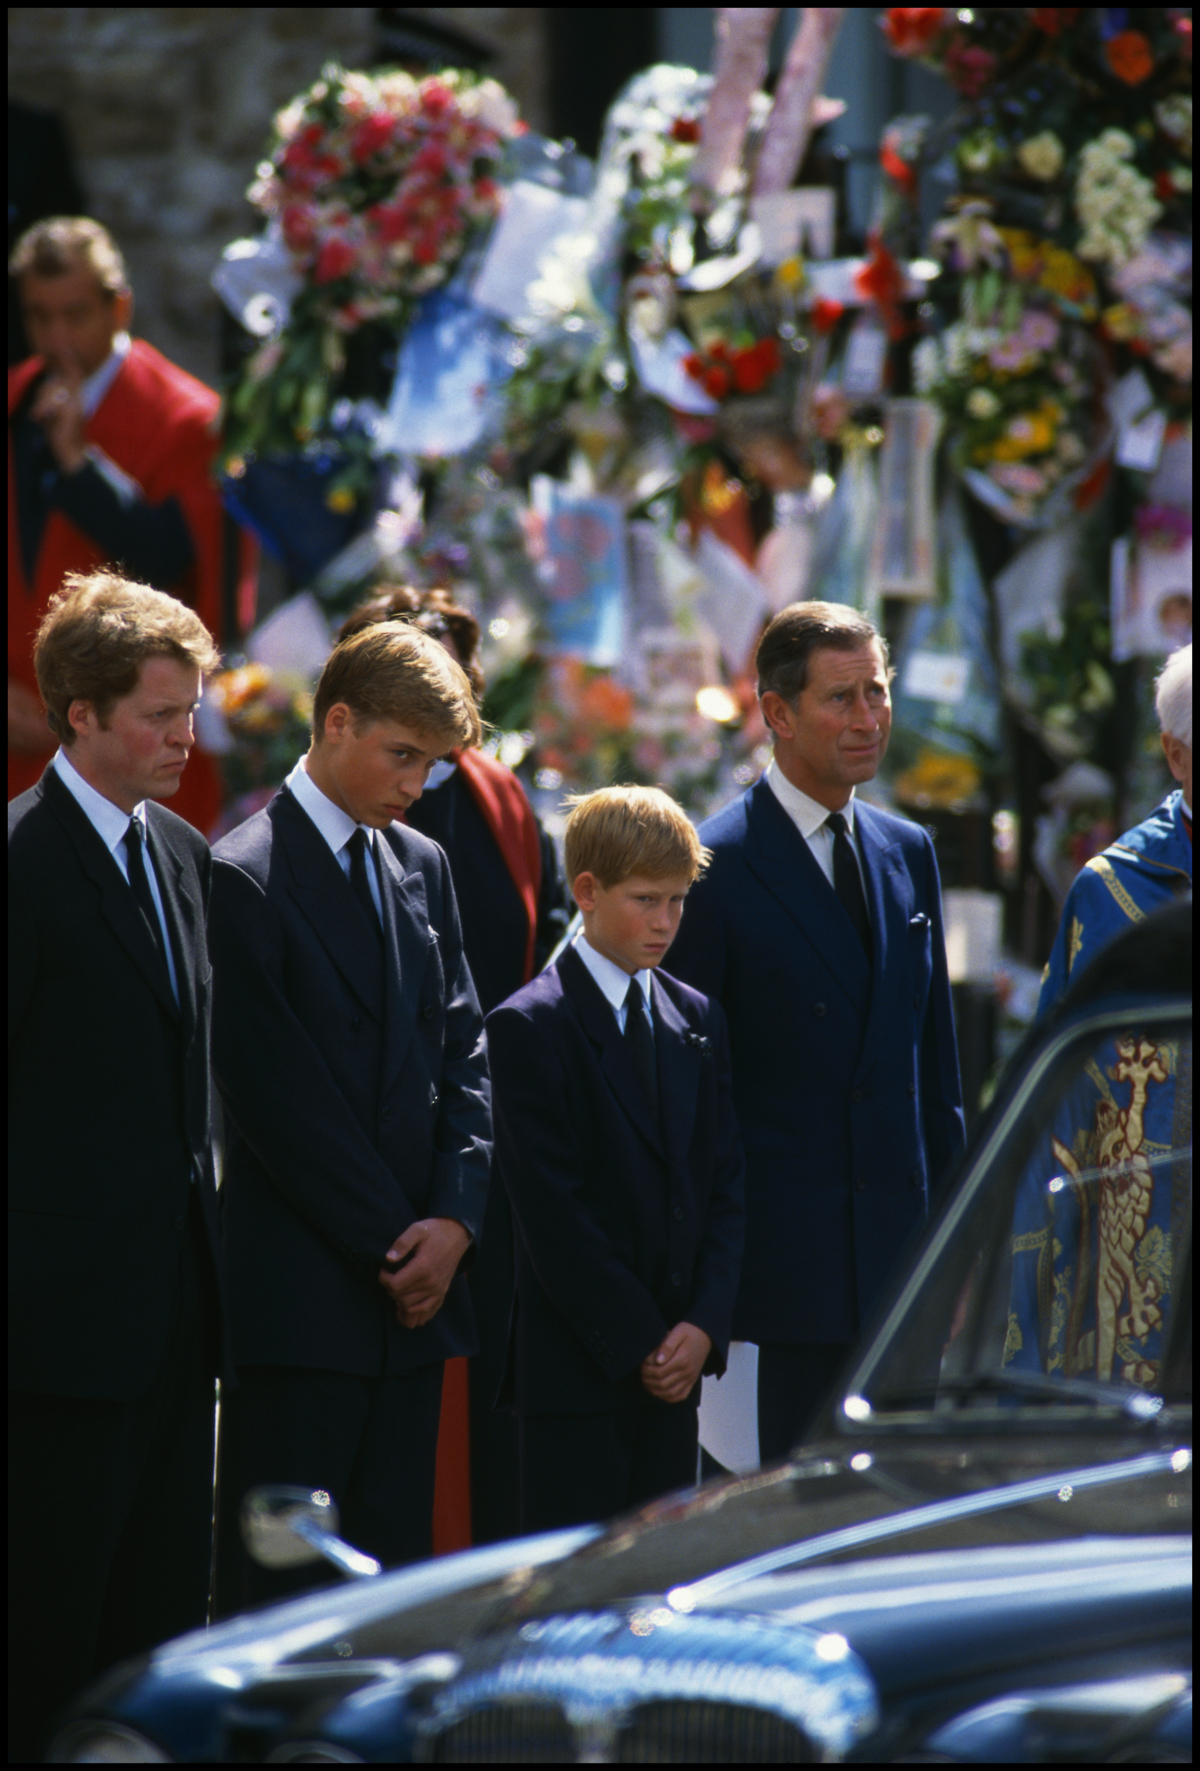 06 Sep 1997, London, England, UK --- Earl Charles Spencer, stands with Prince William, Prince Harry, and Prince Charles at the funeral of Diana, Princess of Wales